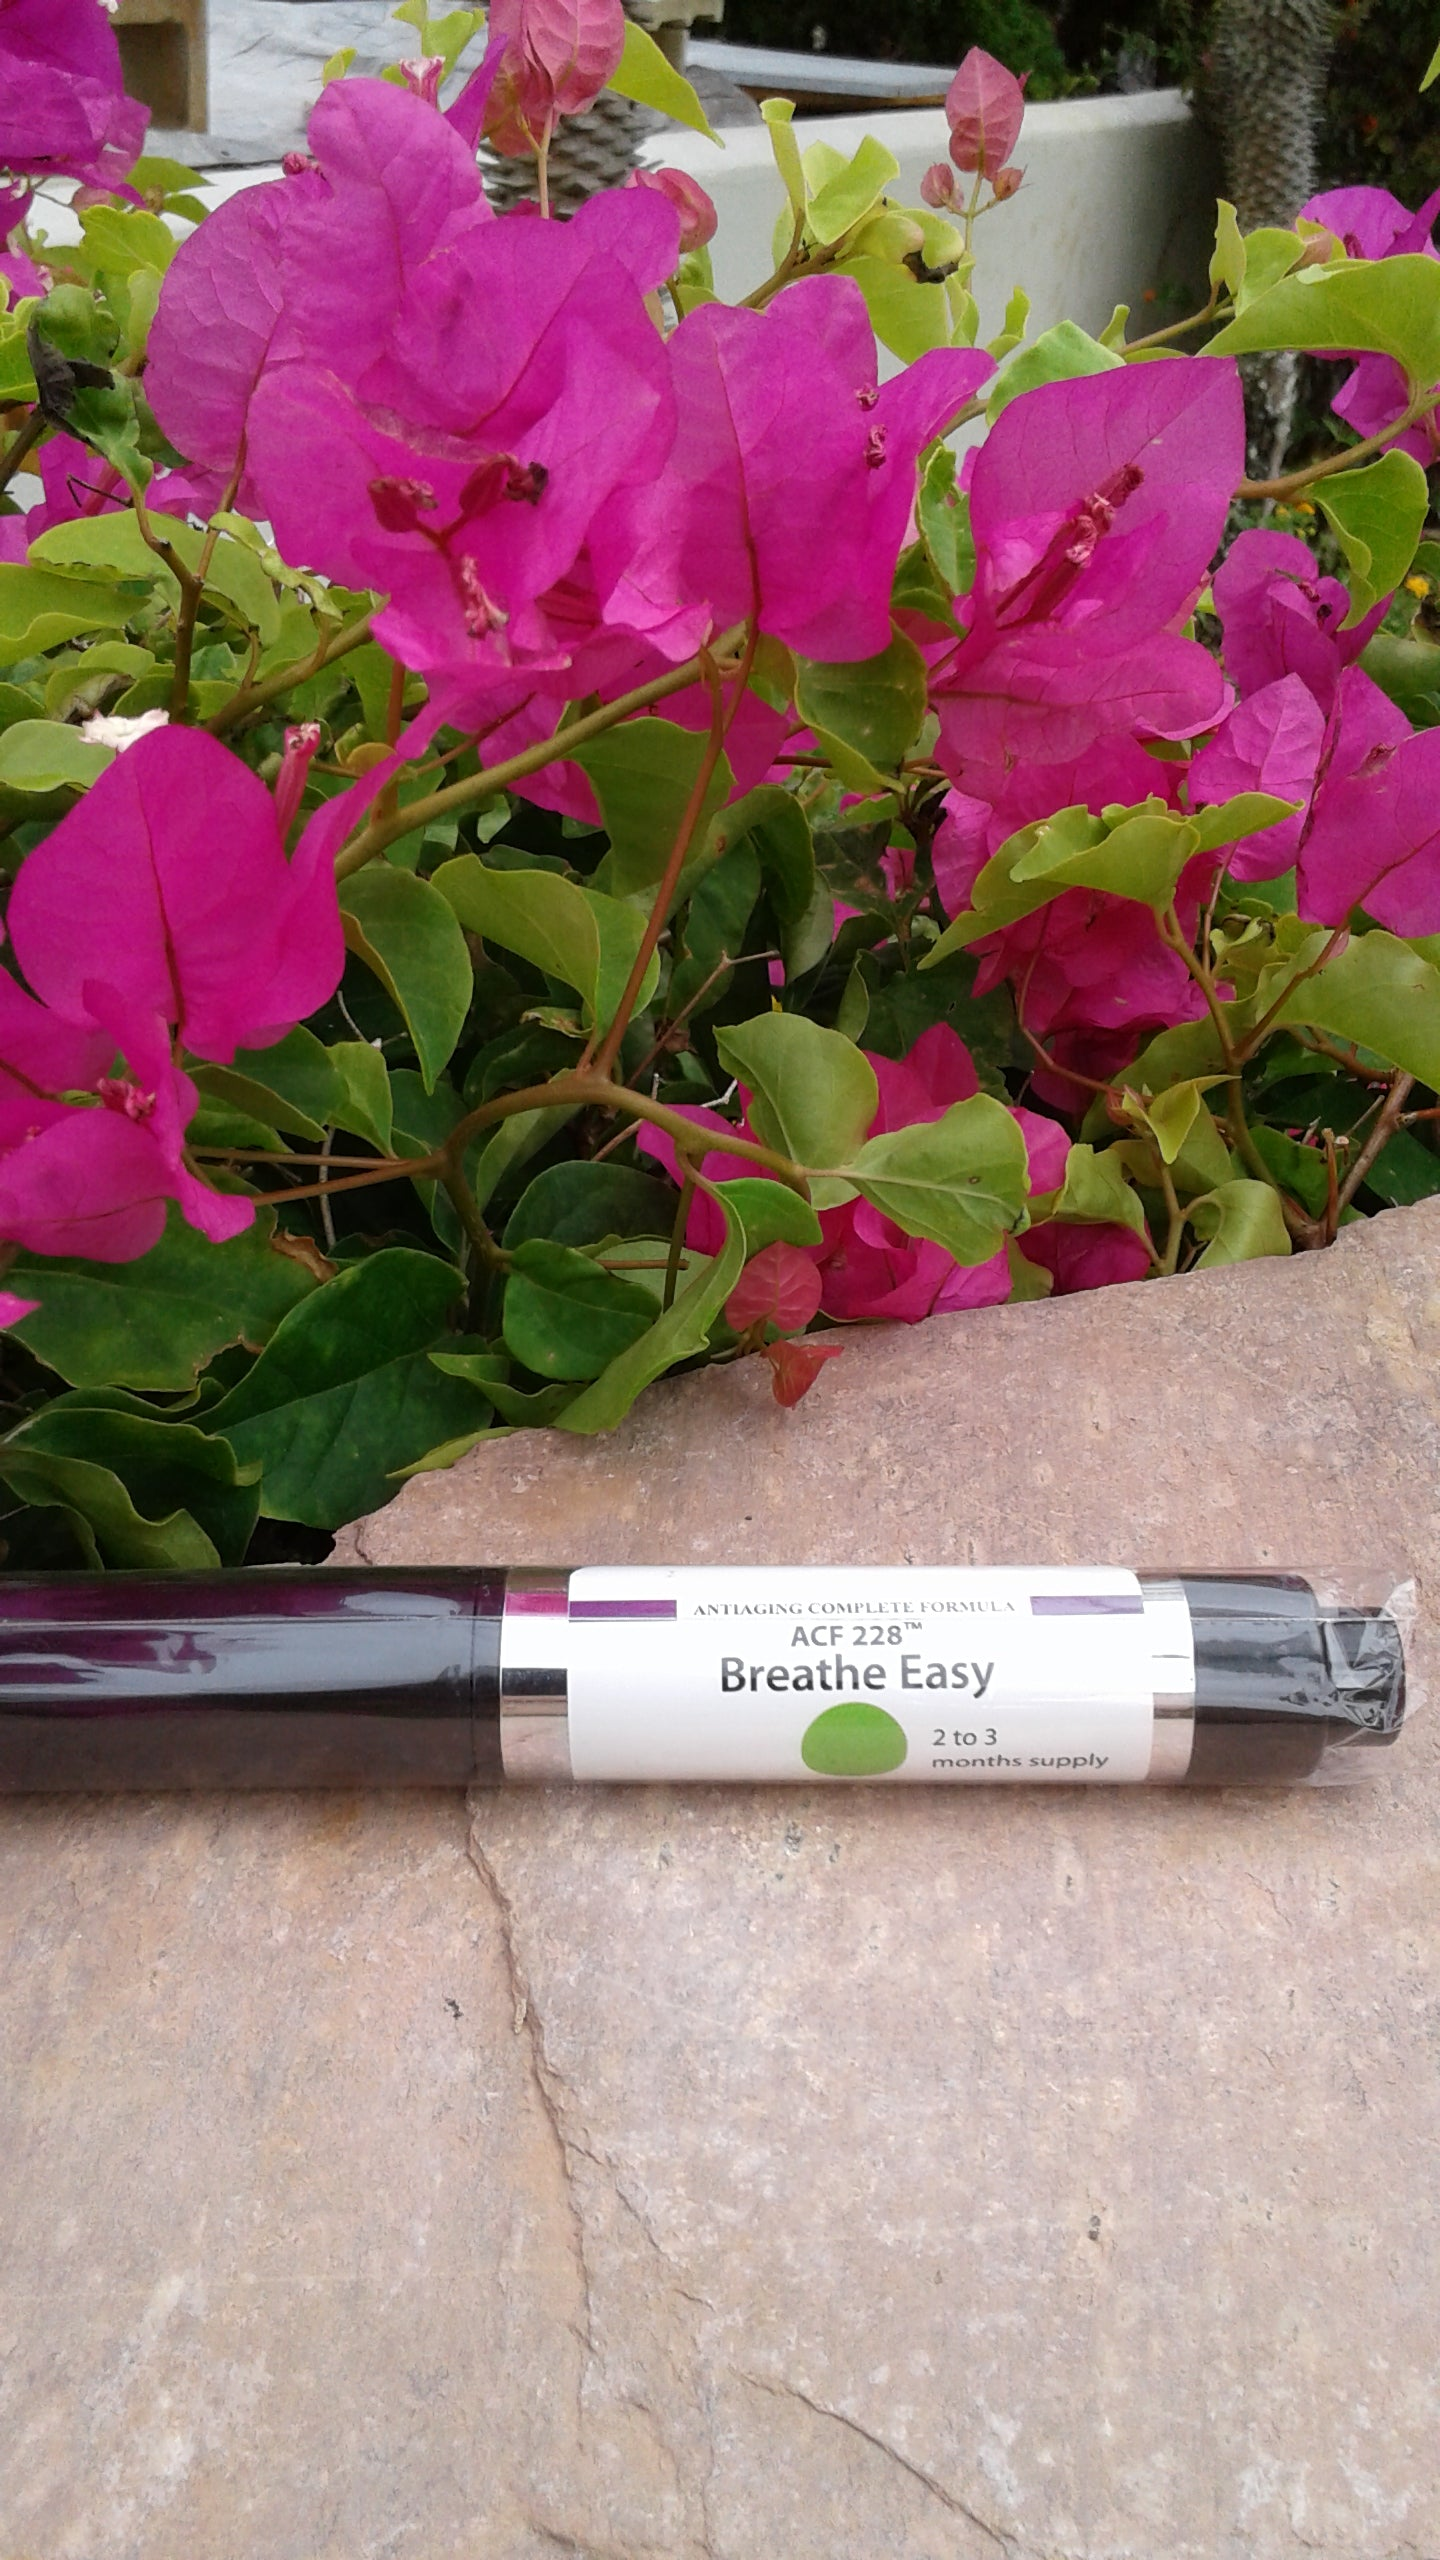 Breathe Easy tube inhaler for respiratory problems by preventing free radicals. Wholesale at $119